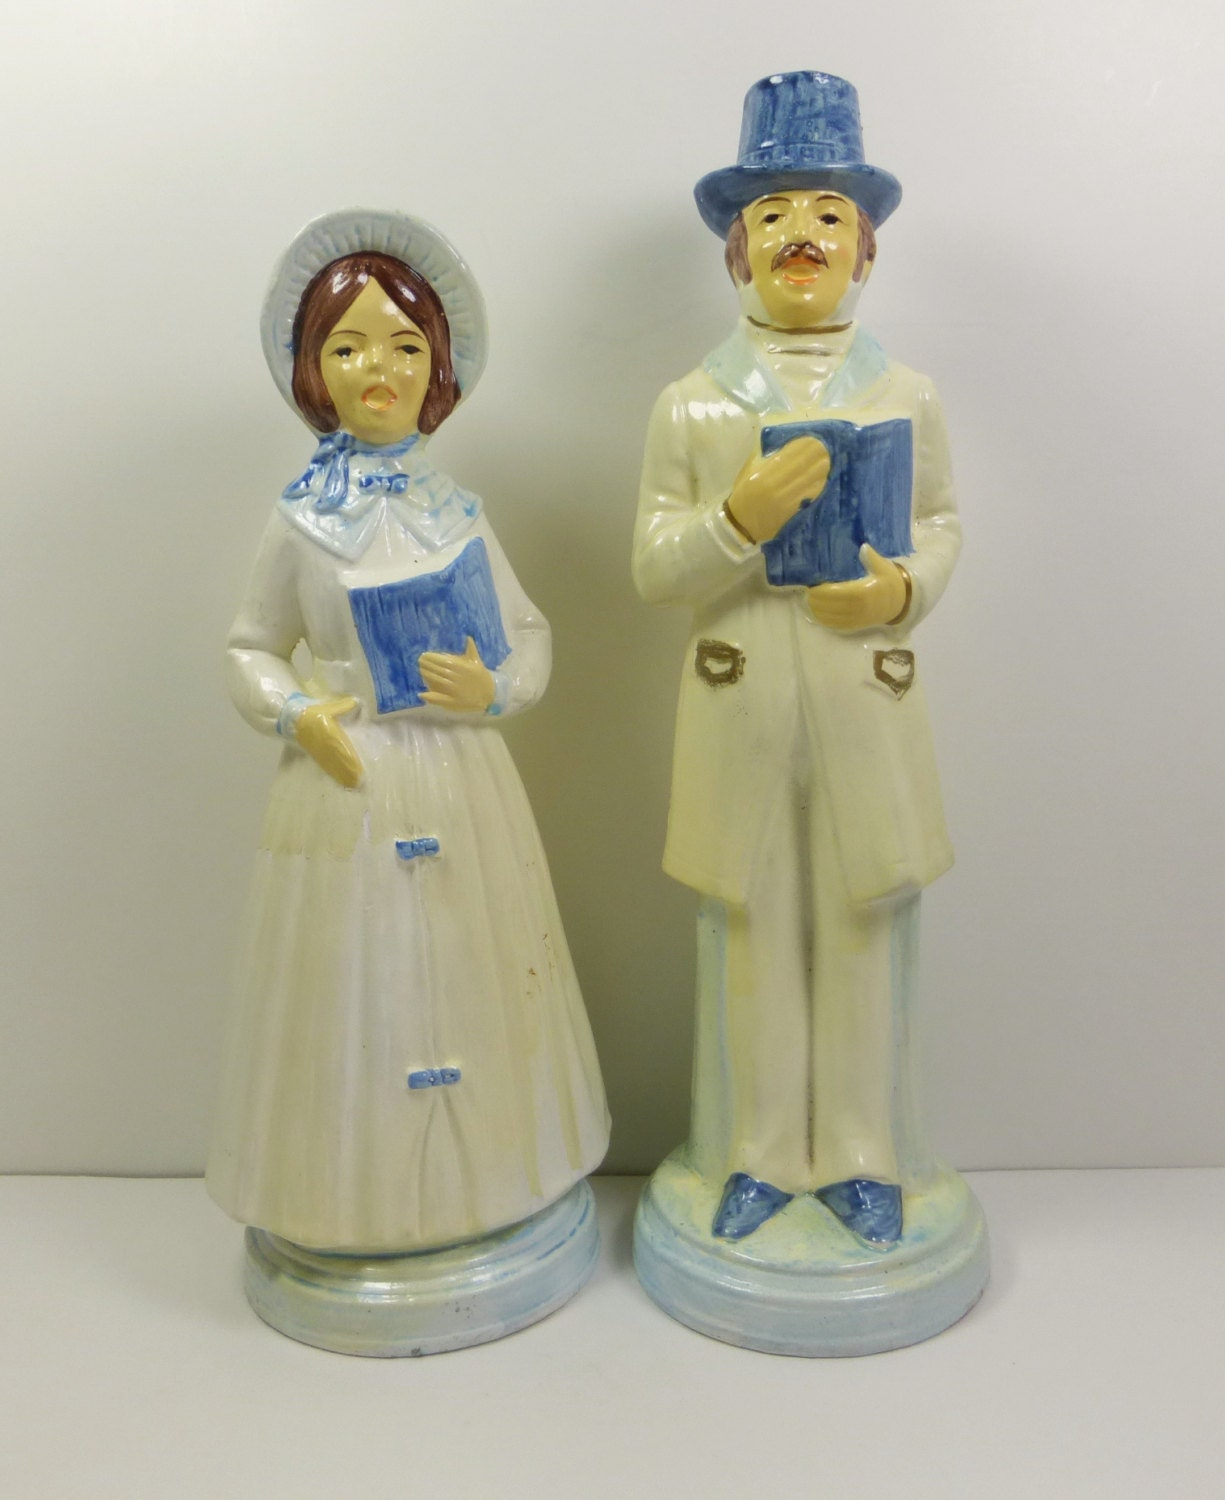 Singing Carolers Candleholders Figurines Vintage By: Victorian Christmas Caroler Figurines Blue And By Naturegirl22